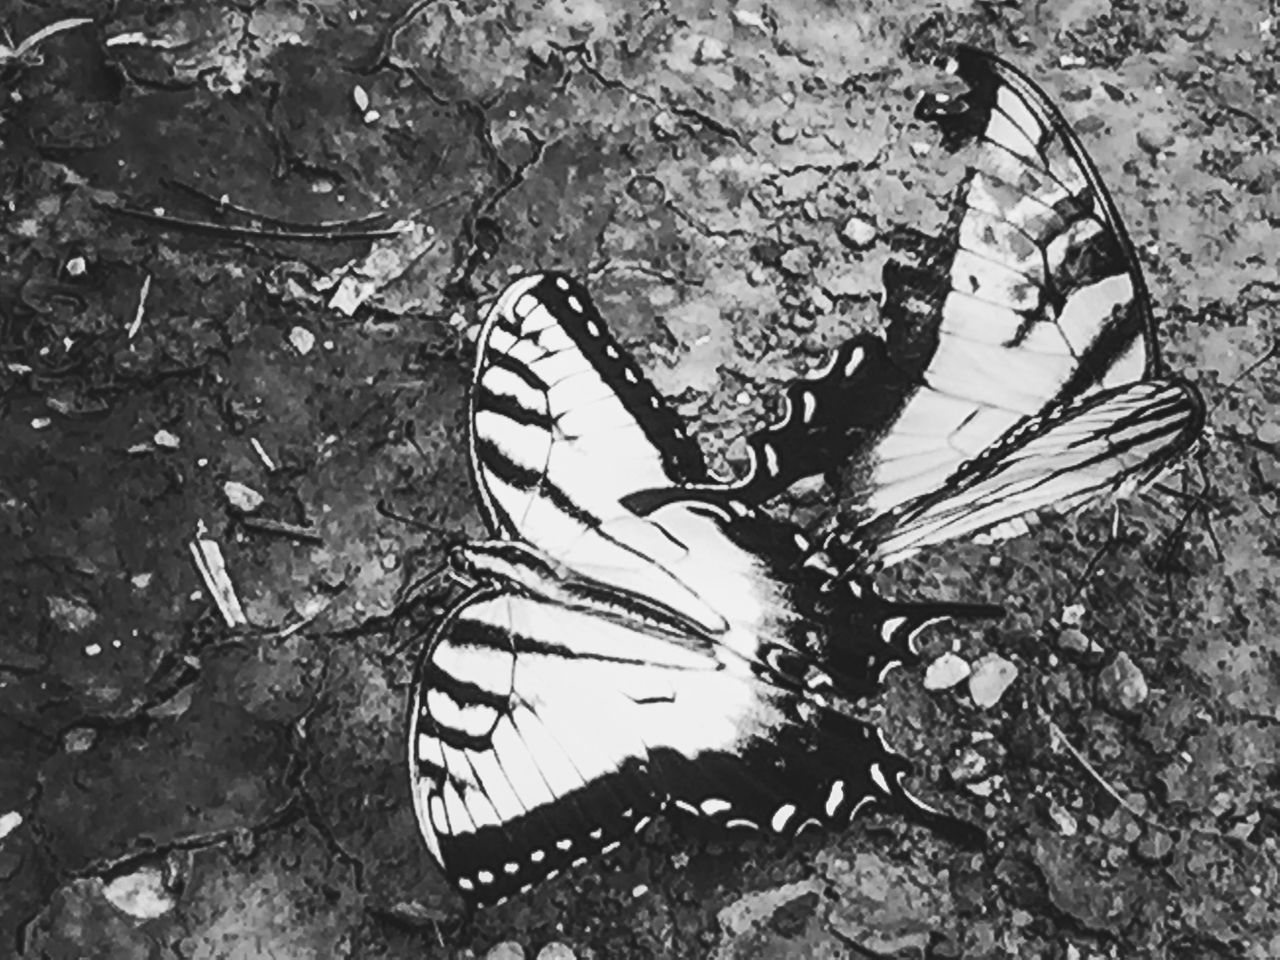 Butterfly EyeEm Nature Lover Blackandwhite IPhoneography Lines Capturing Freedom Nature Simplicity Black & White Shades Of Grey